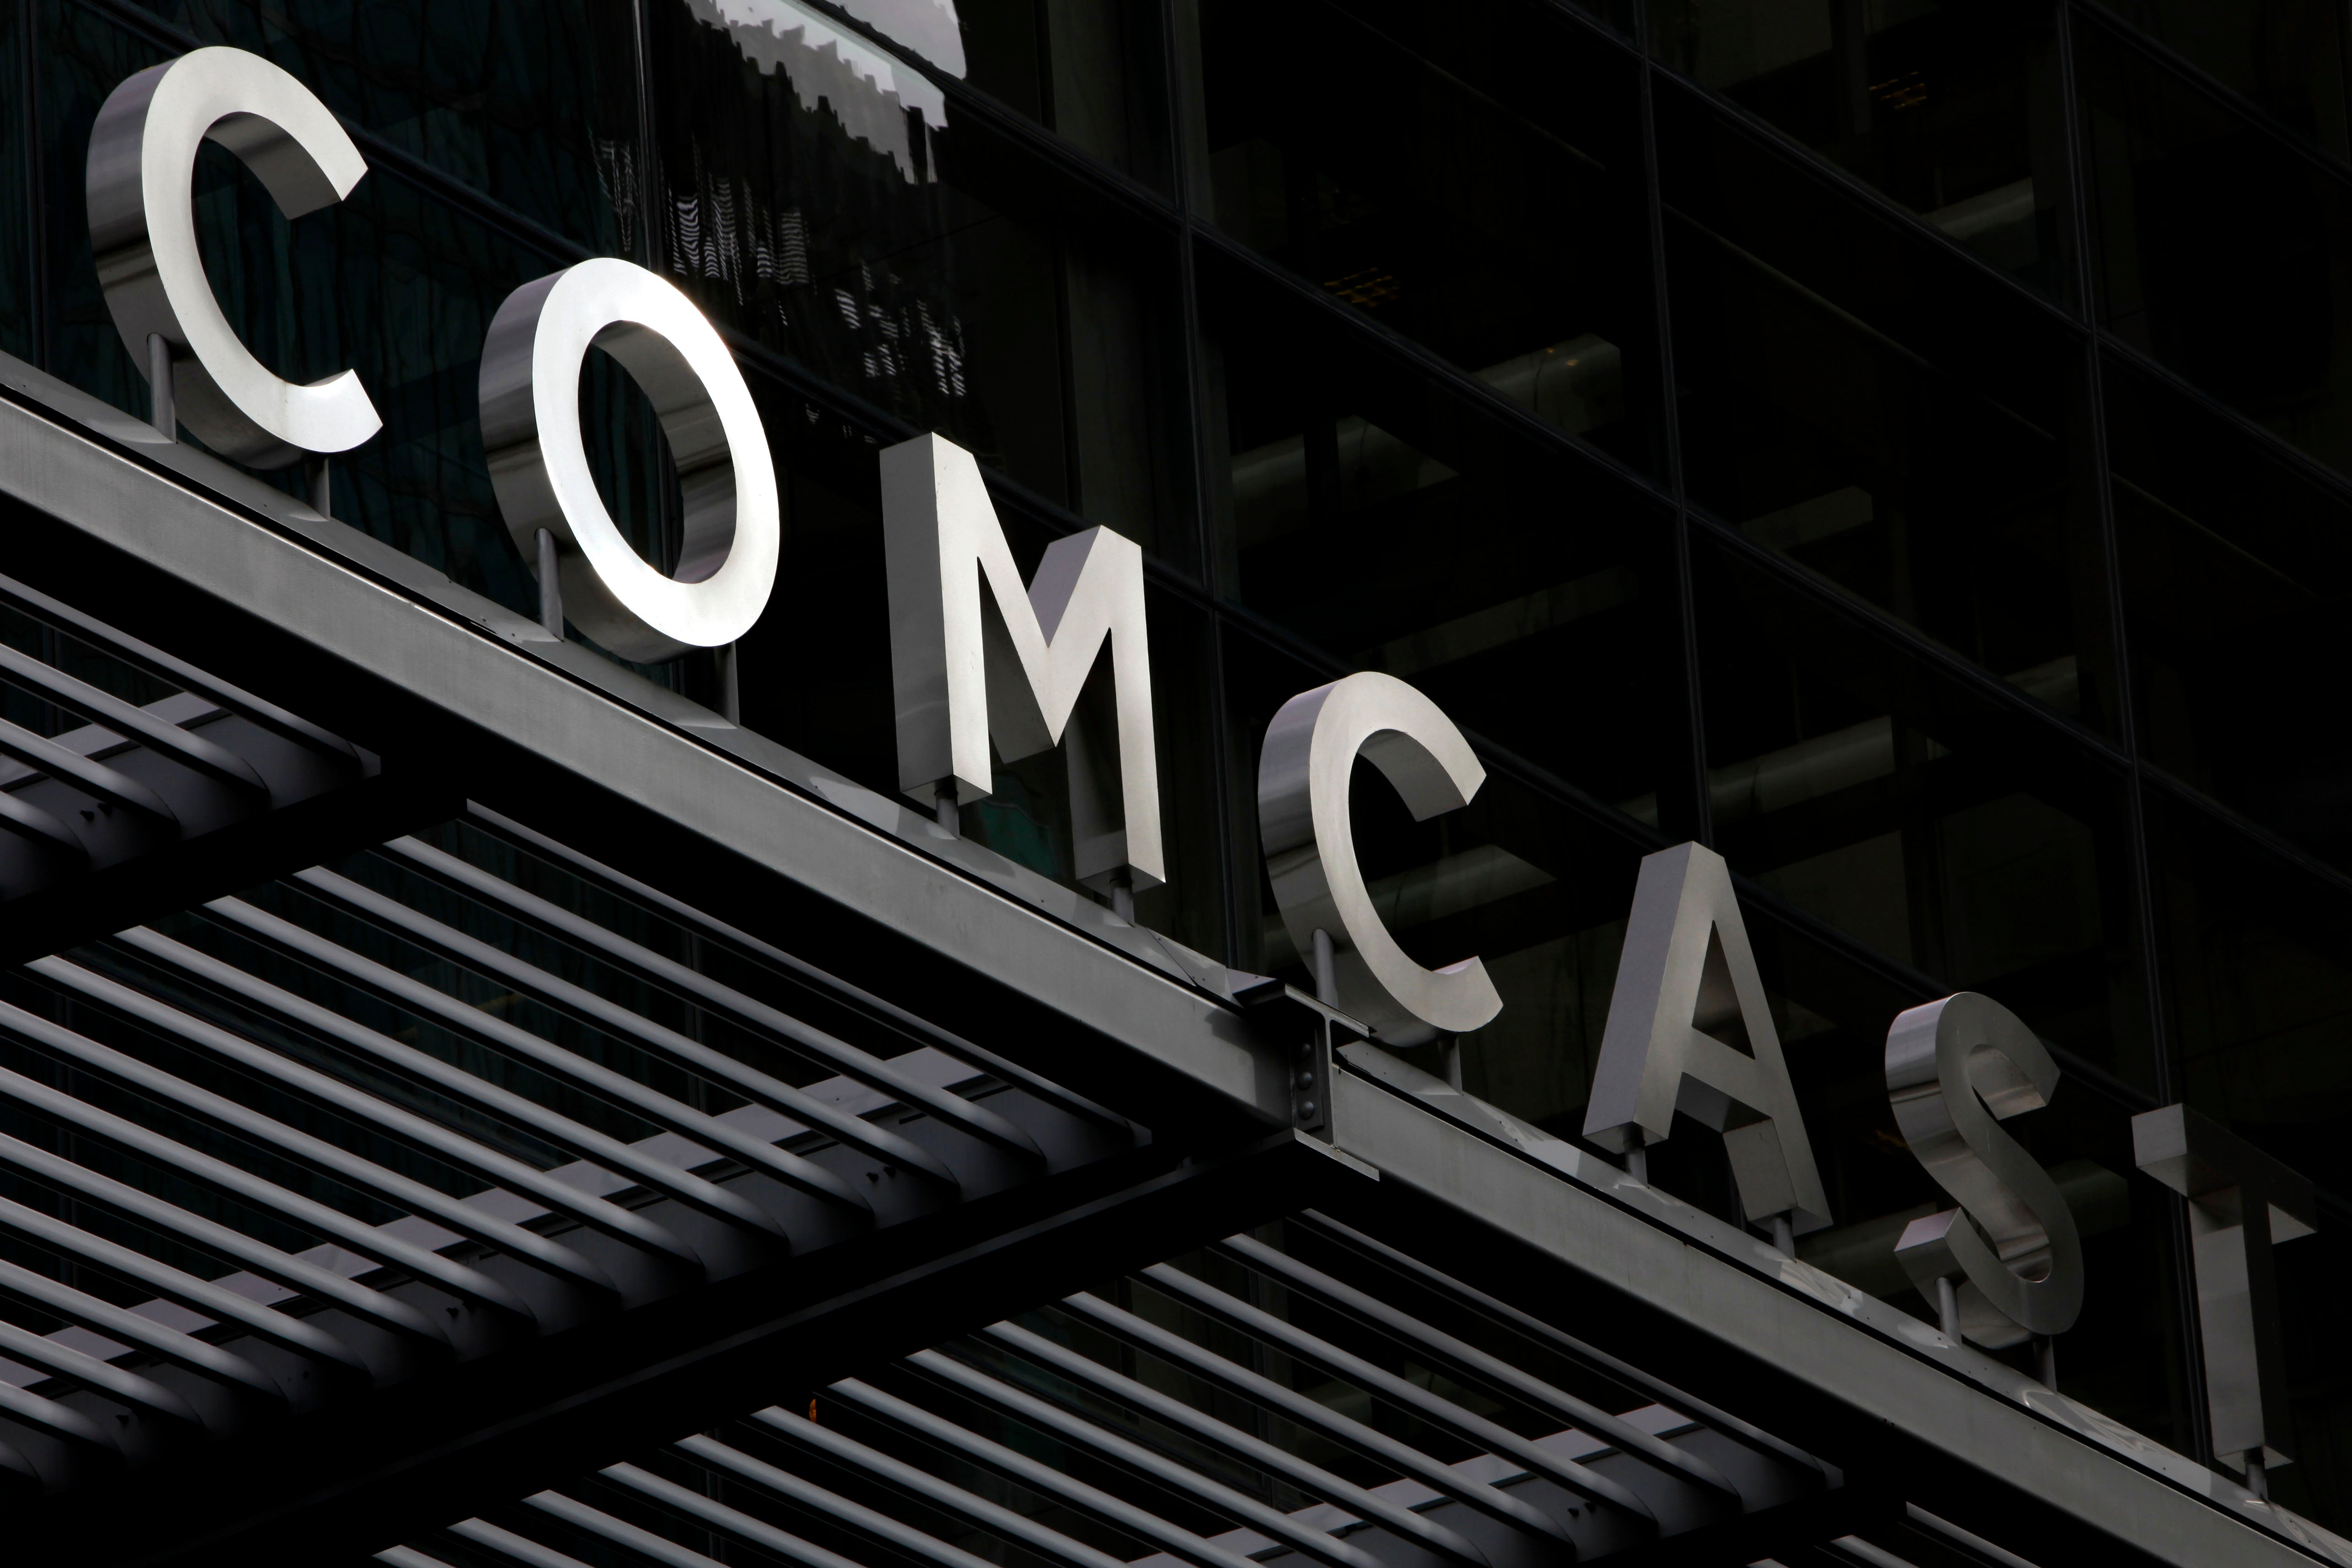 Buy In May And Here to Stay: Comcast, Boeing, Vulcan